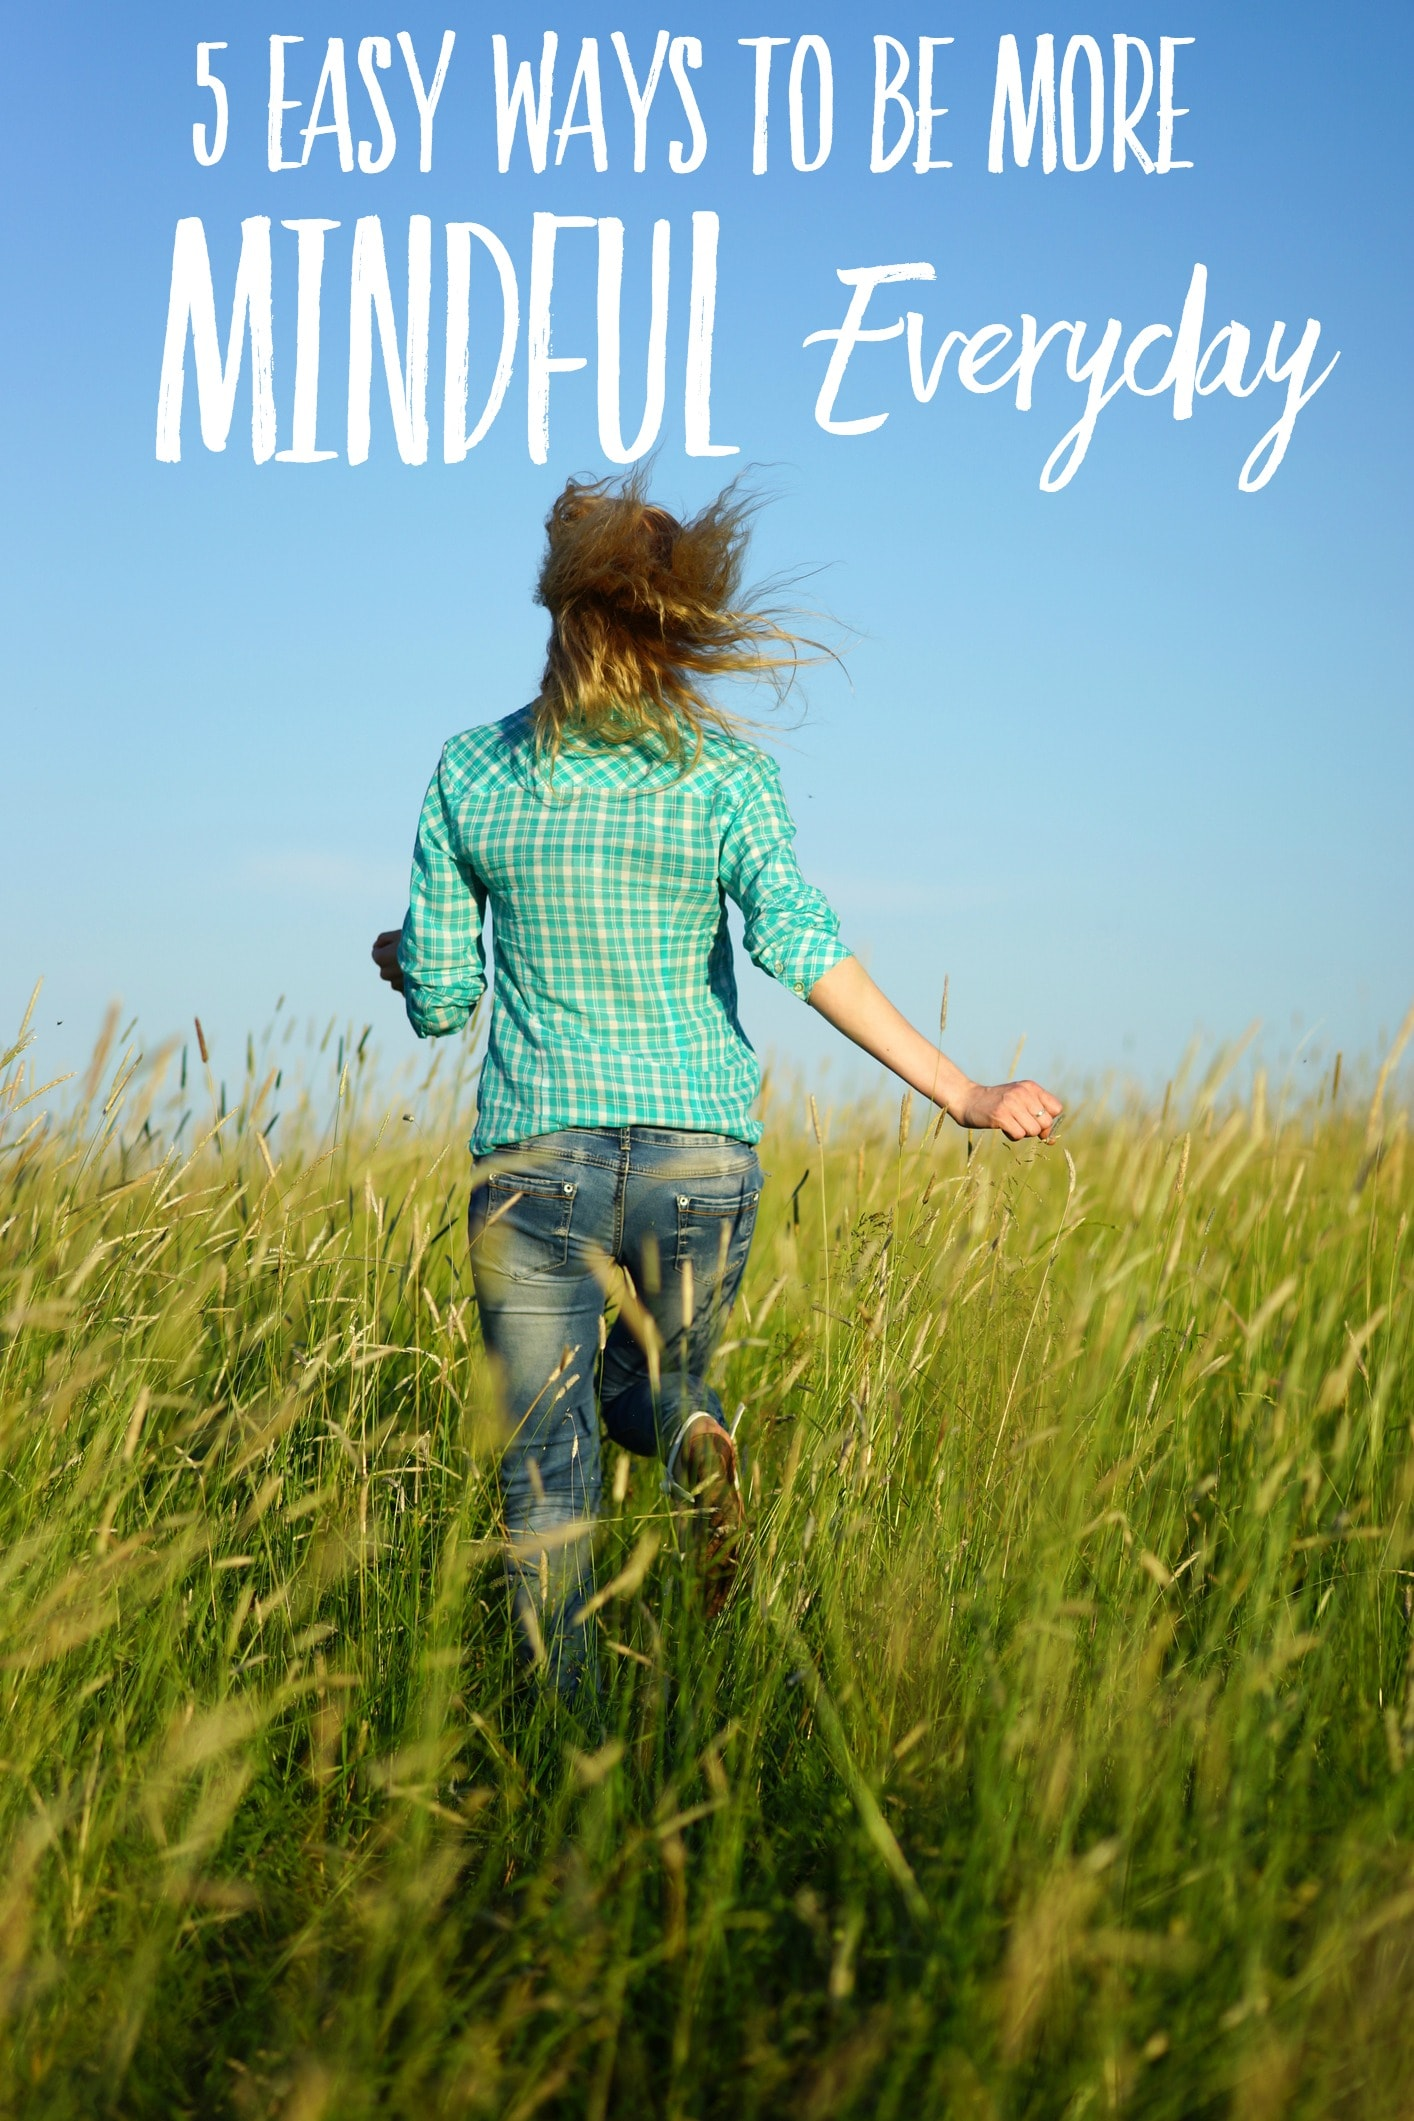 Find out how to be more mindful in your everyday life. People who are mindful are happier, more productive, and experience less stress. Learn easy ways to practice mindfulness.